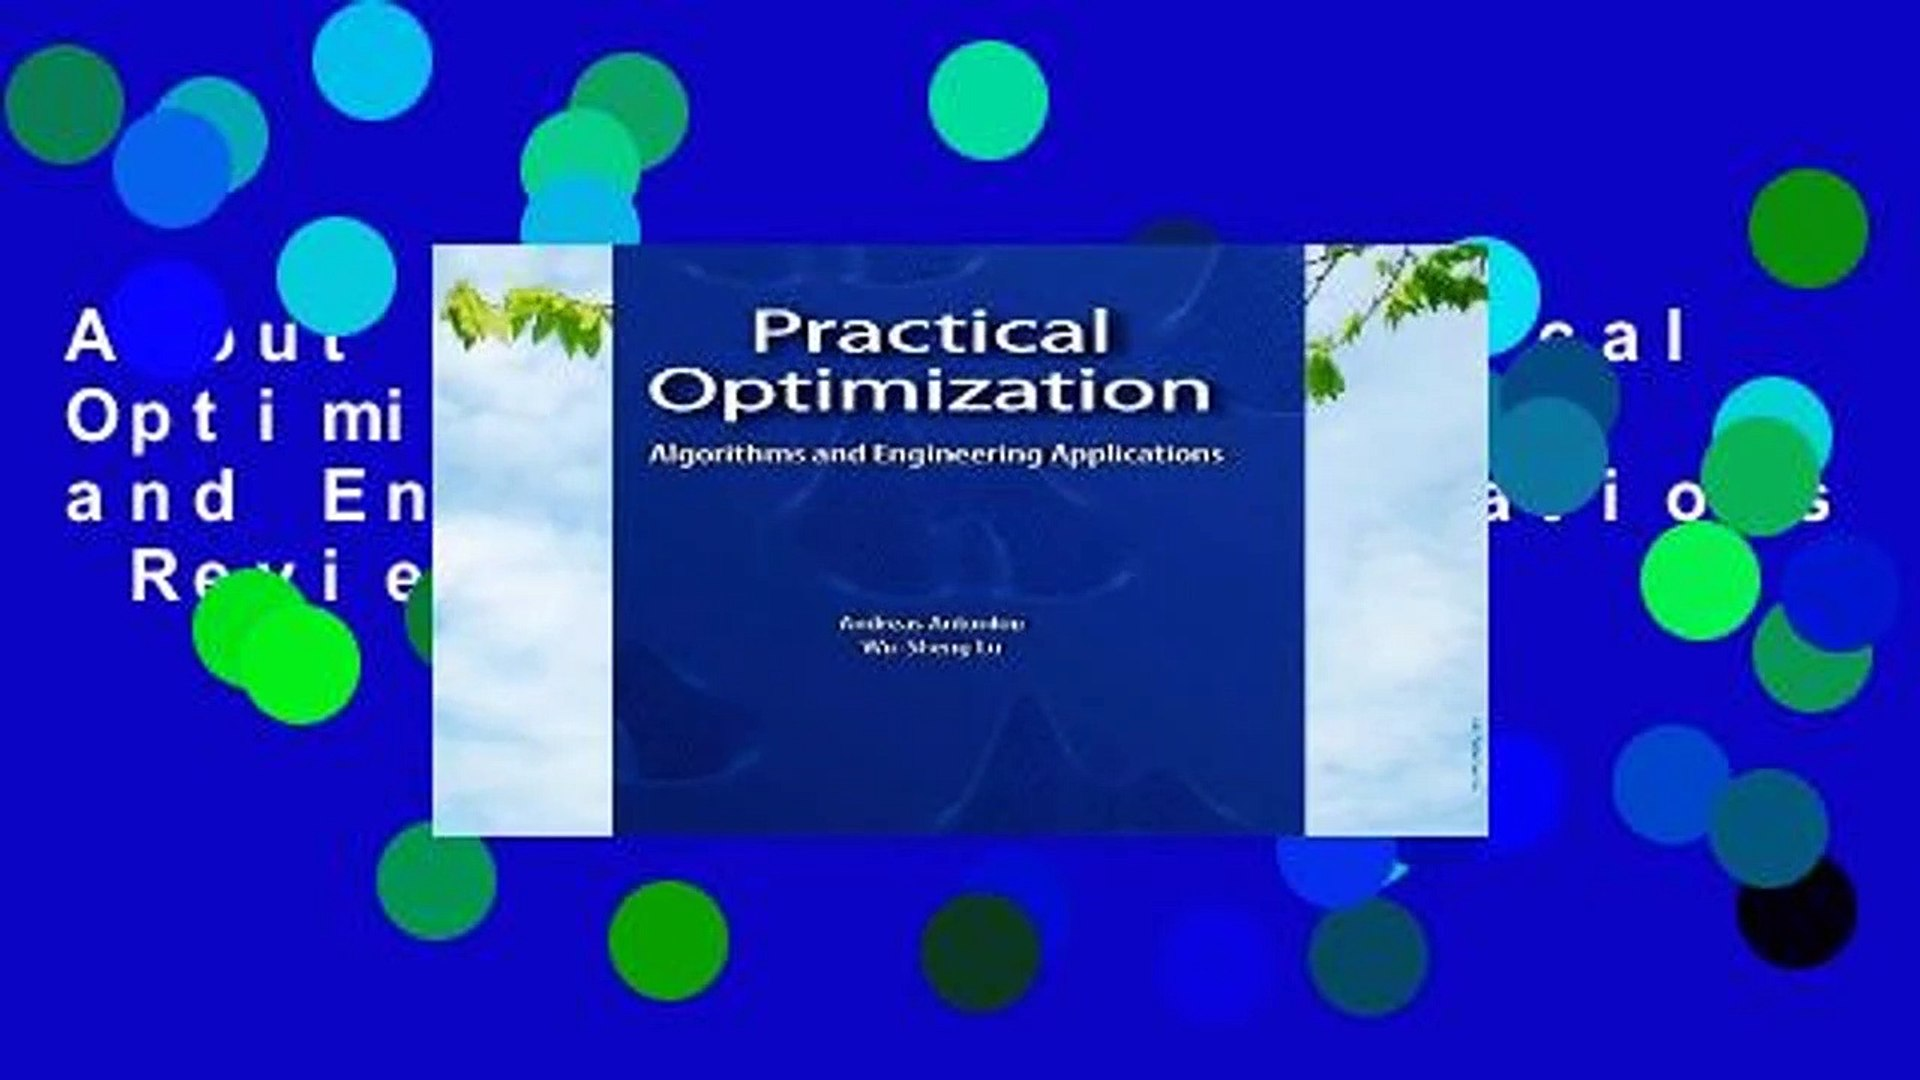 Practical Optimization Algorithms And Engineering Applications